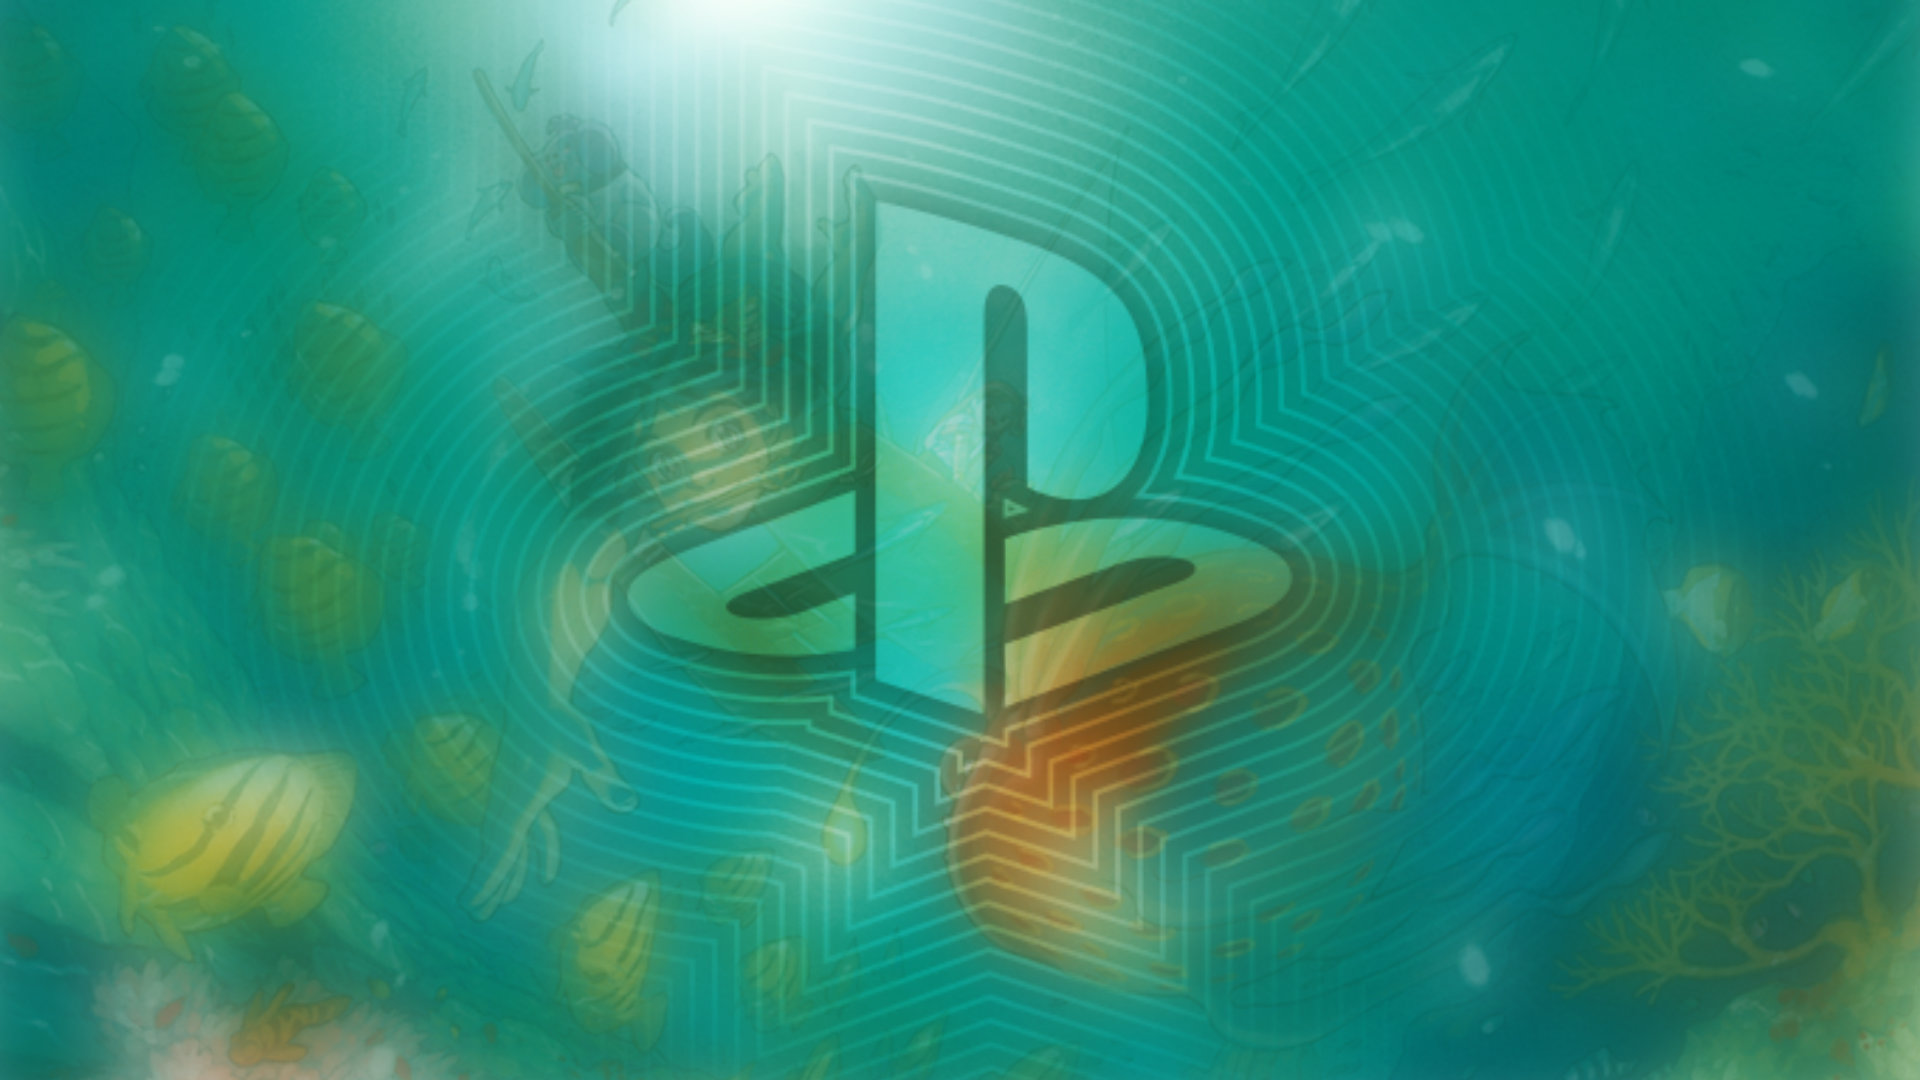 Get 'em While They Last! PlayStation Store RPGs for PS One, PS2, PS3, PSP, and PS Vita (No Text)